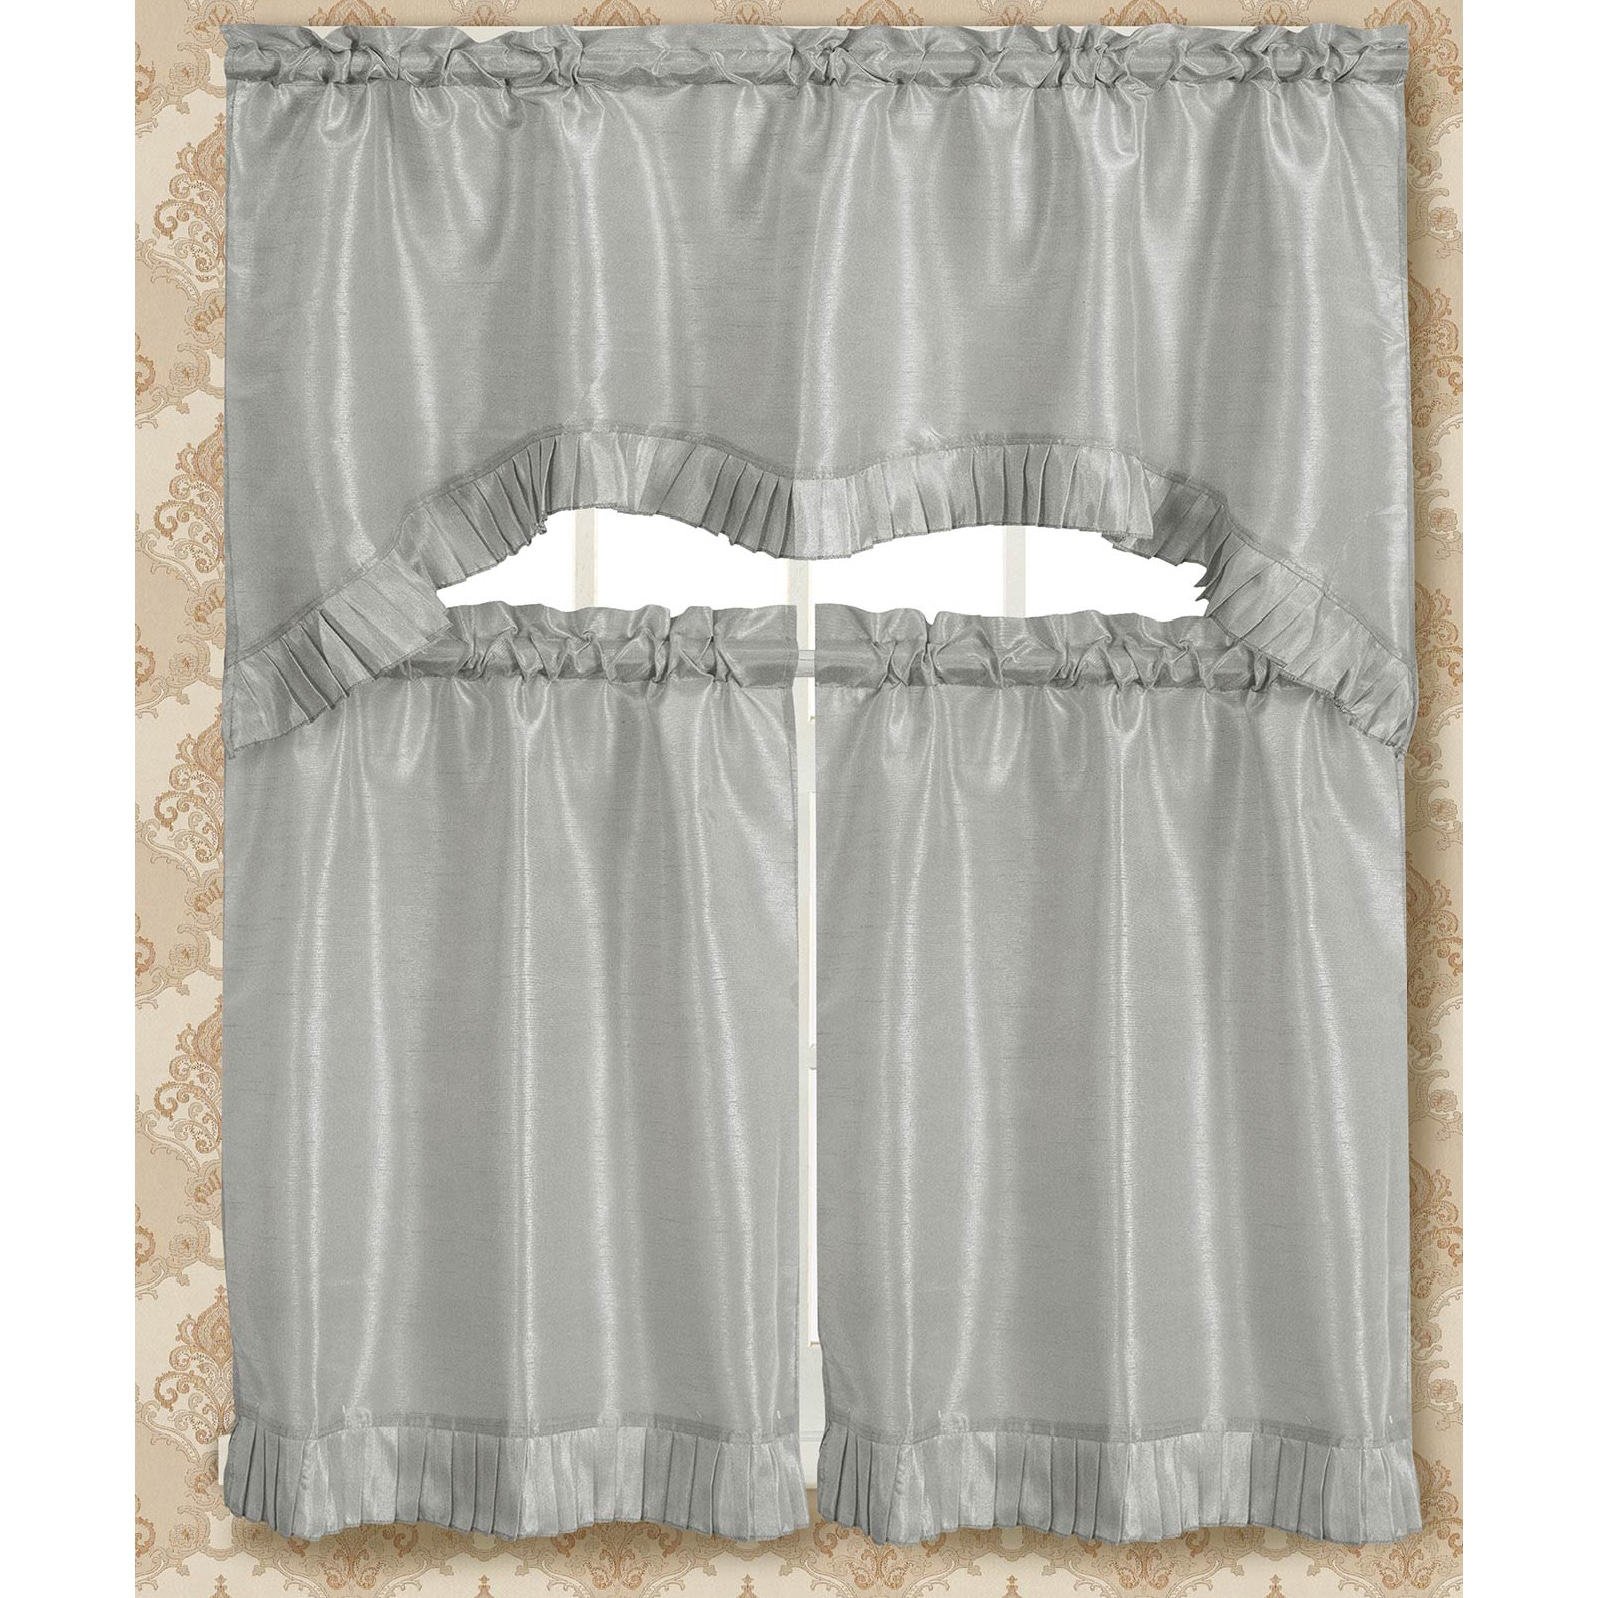 Bermuda Ruffle Kitchen Curtain Tier Set Within Bermuda Ruffle Kitchen Curtain Tier Sets (View 3 of 20)